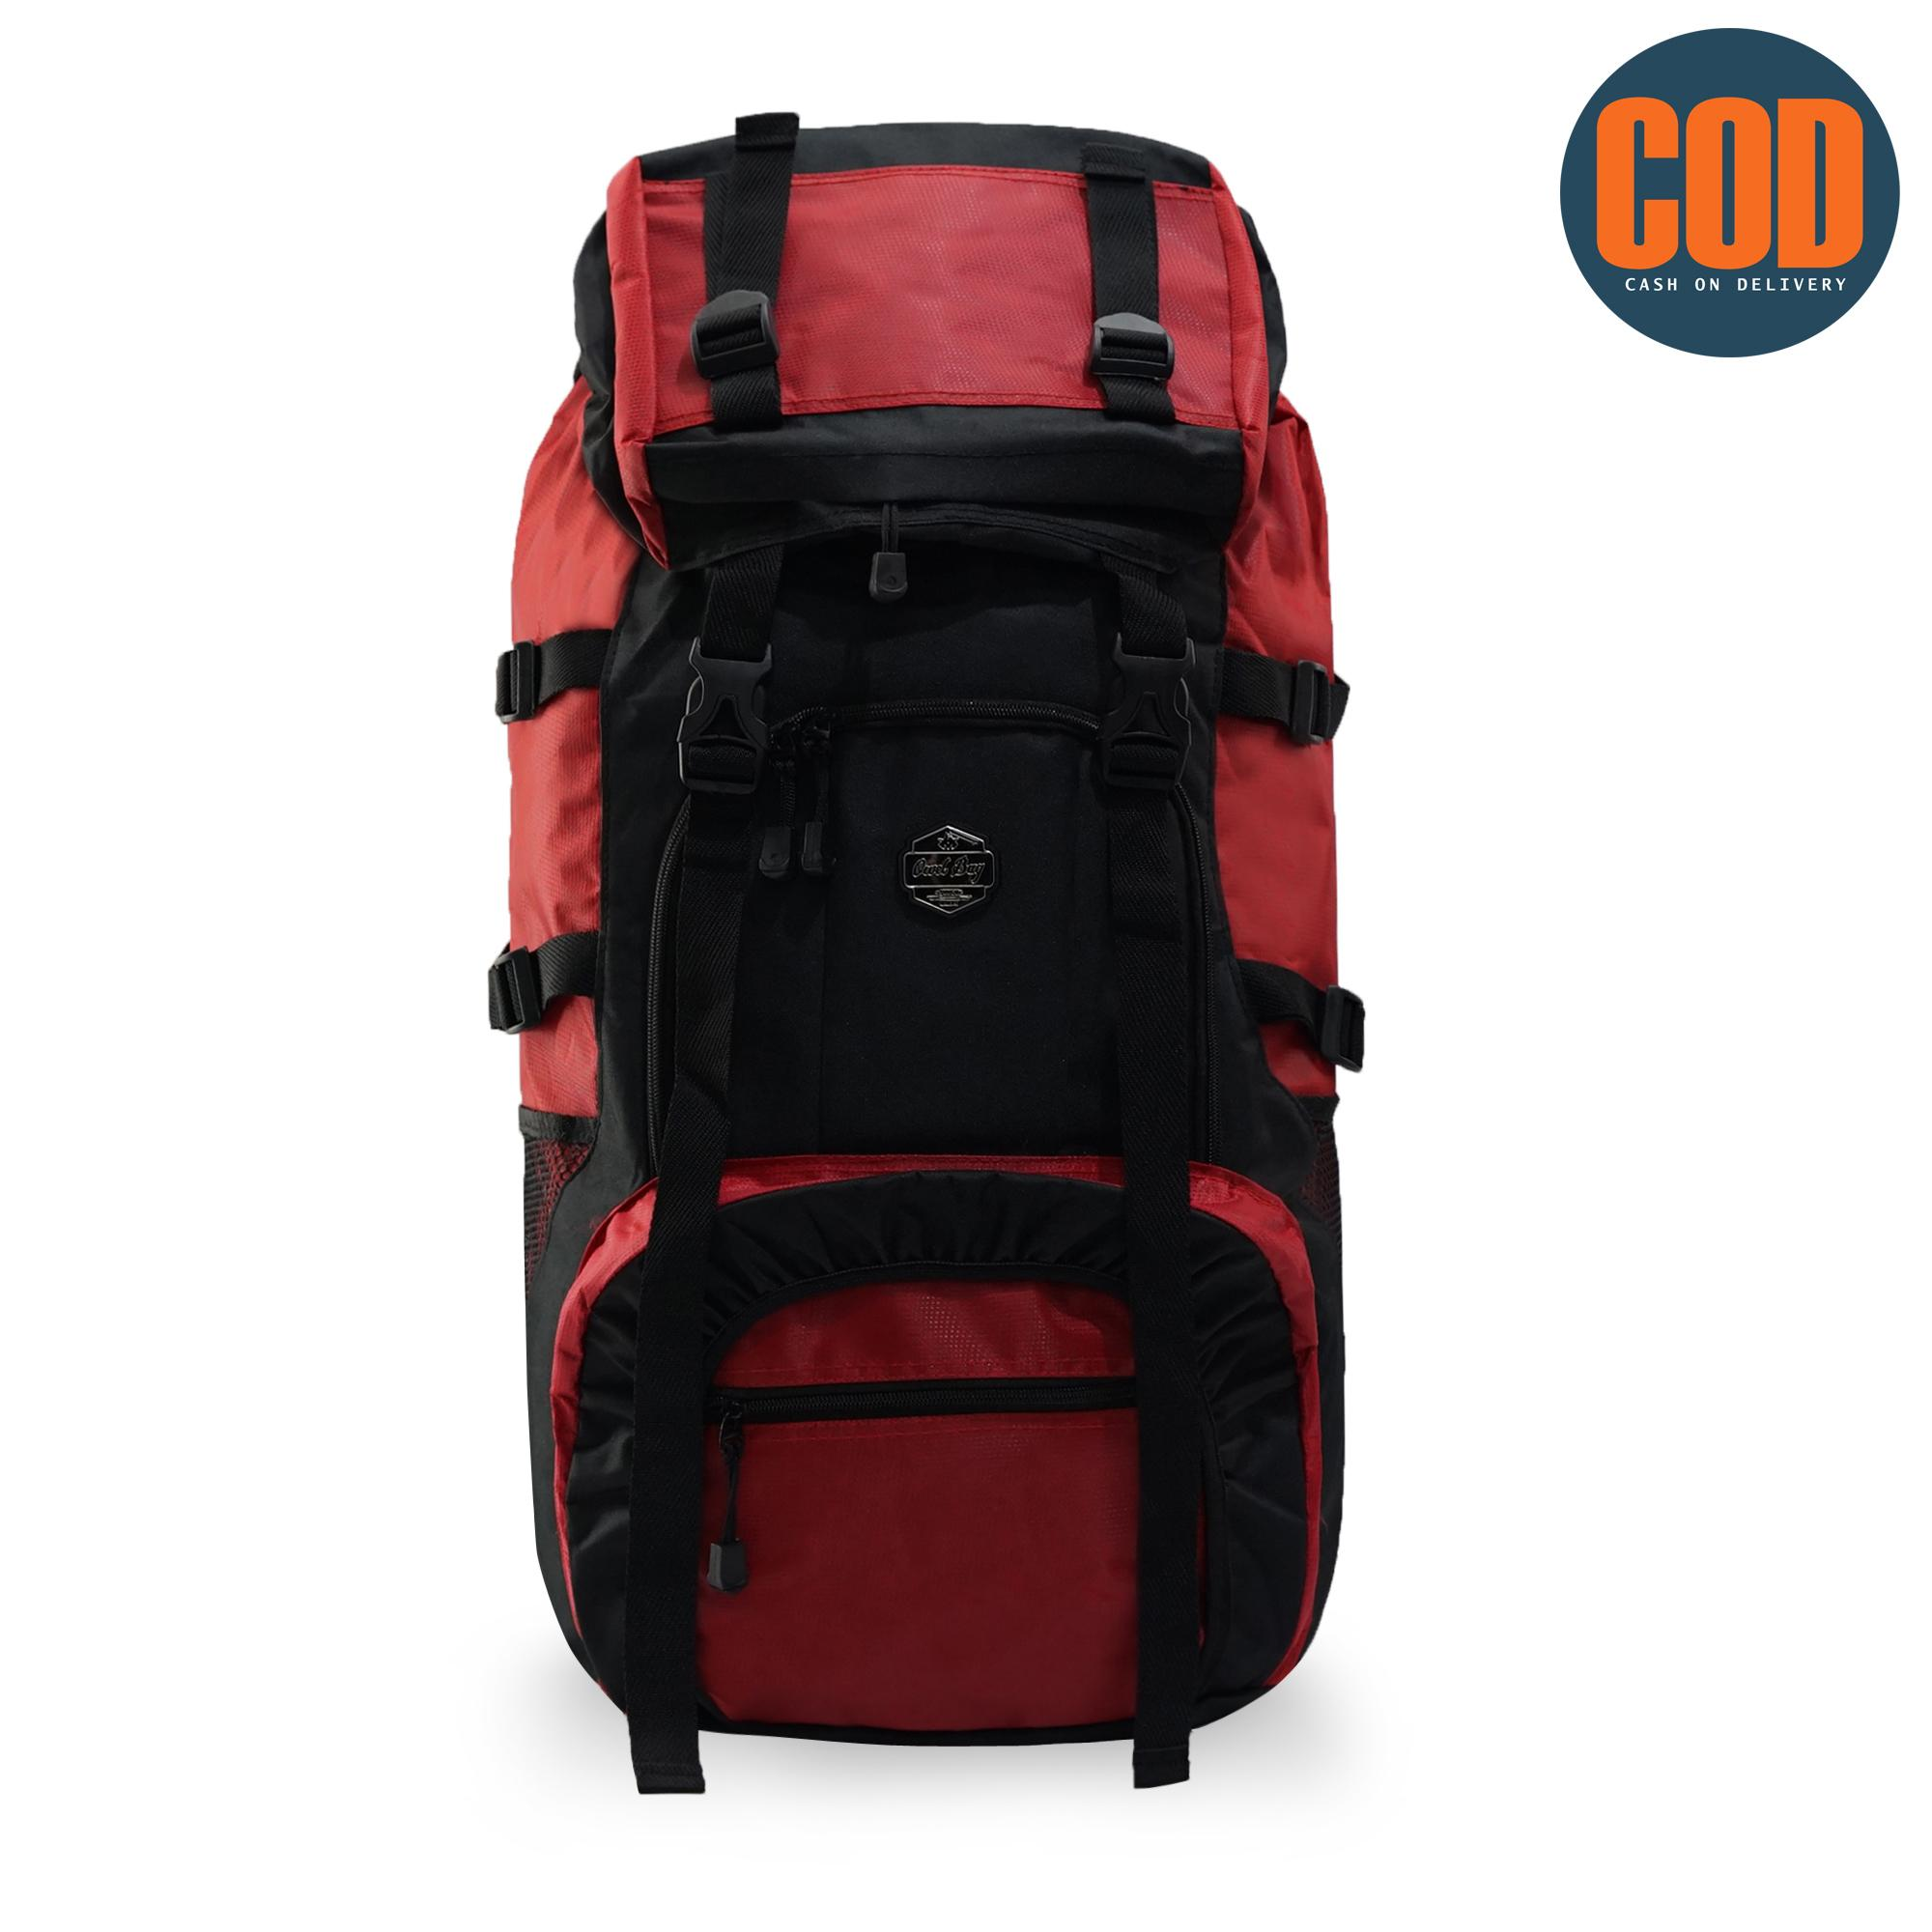 Tas Ransel Gunung Tas Keril Tas Carrier Tas Camping Tas Backpack Sport Outdoor kombinasi